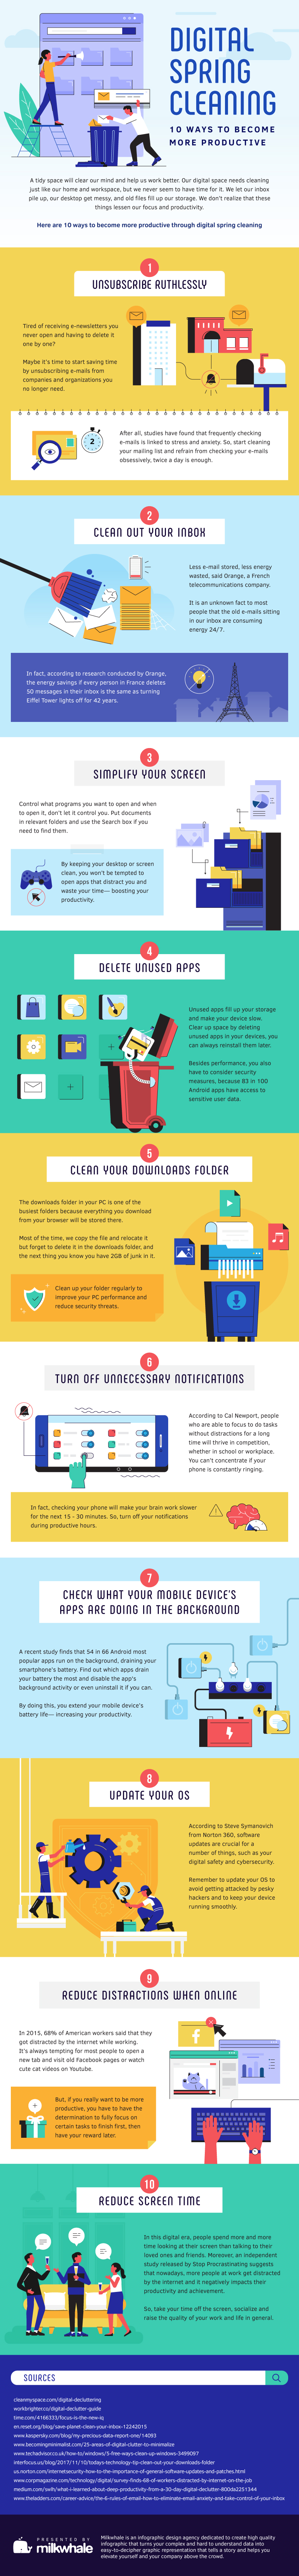 Digital Spring Cleaning Infographic